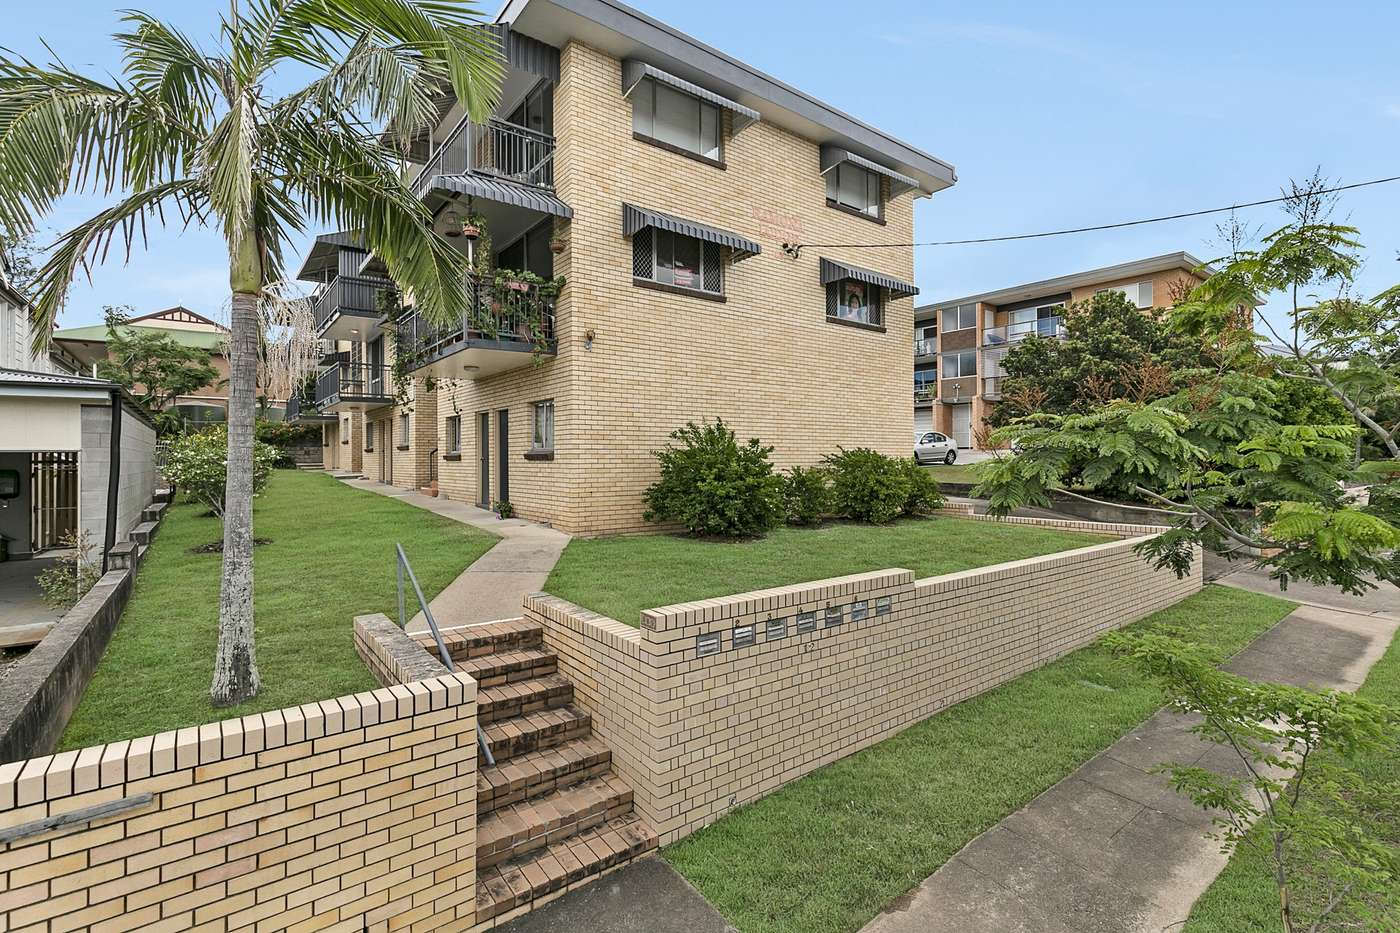 Main view of Homely unit listing, 5/12 Rialto Street, Coorparoo, QLD 4151